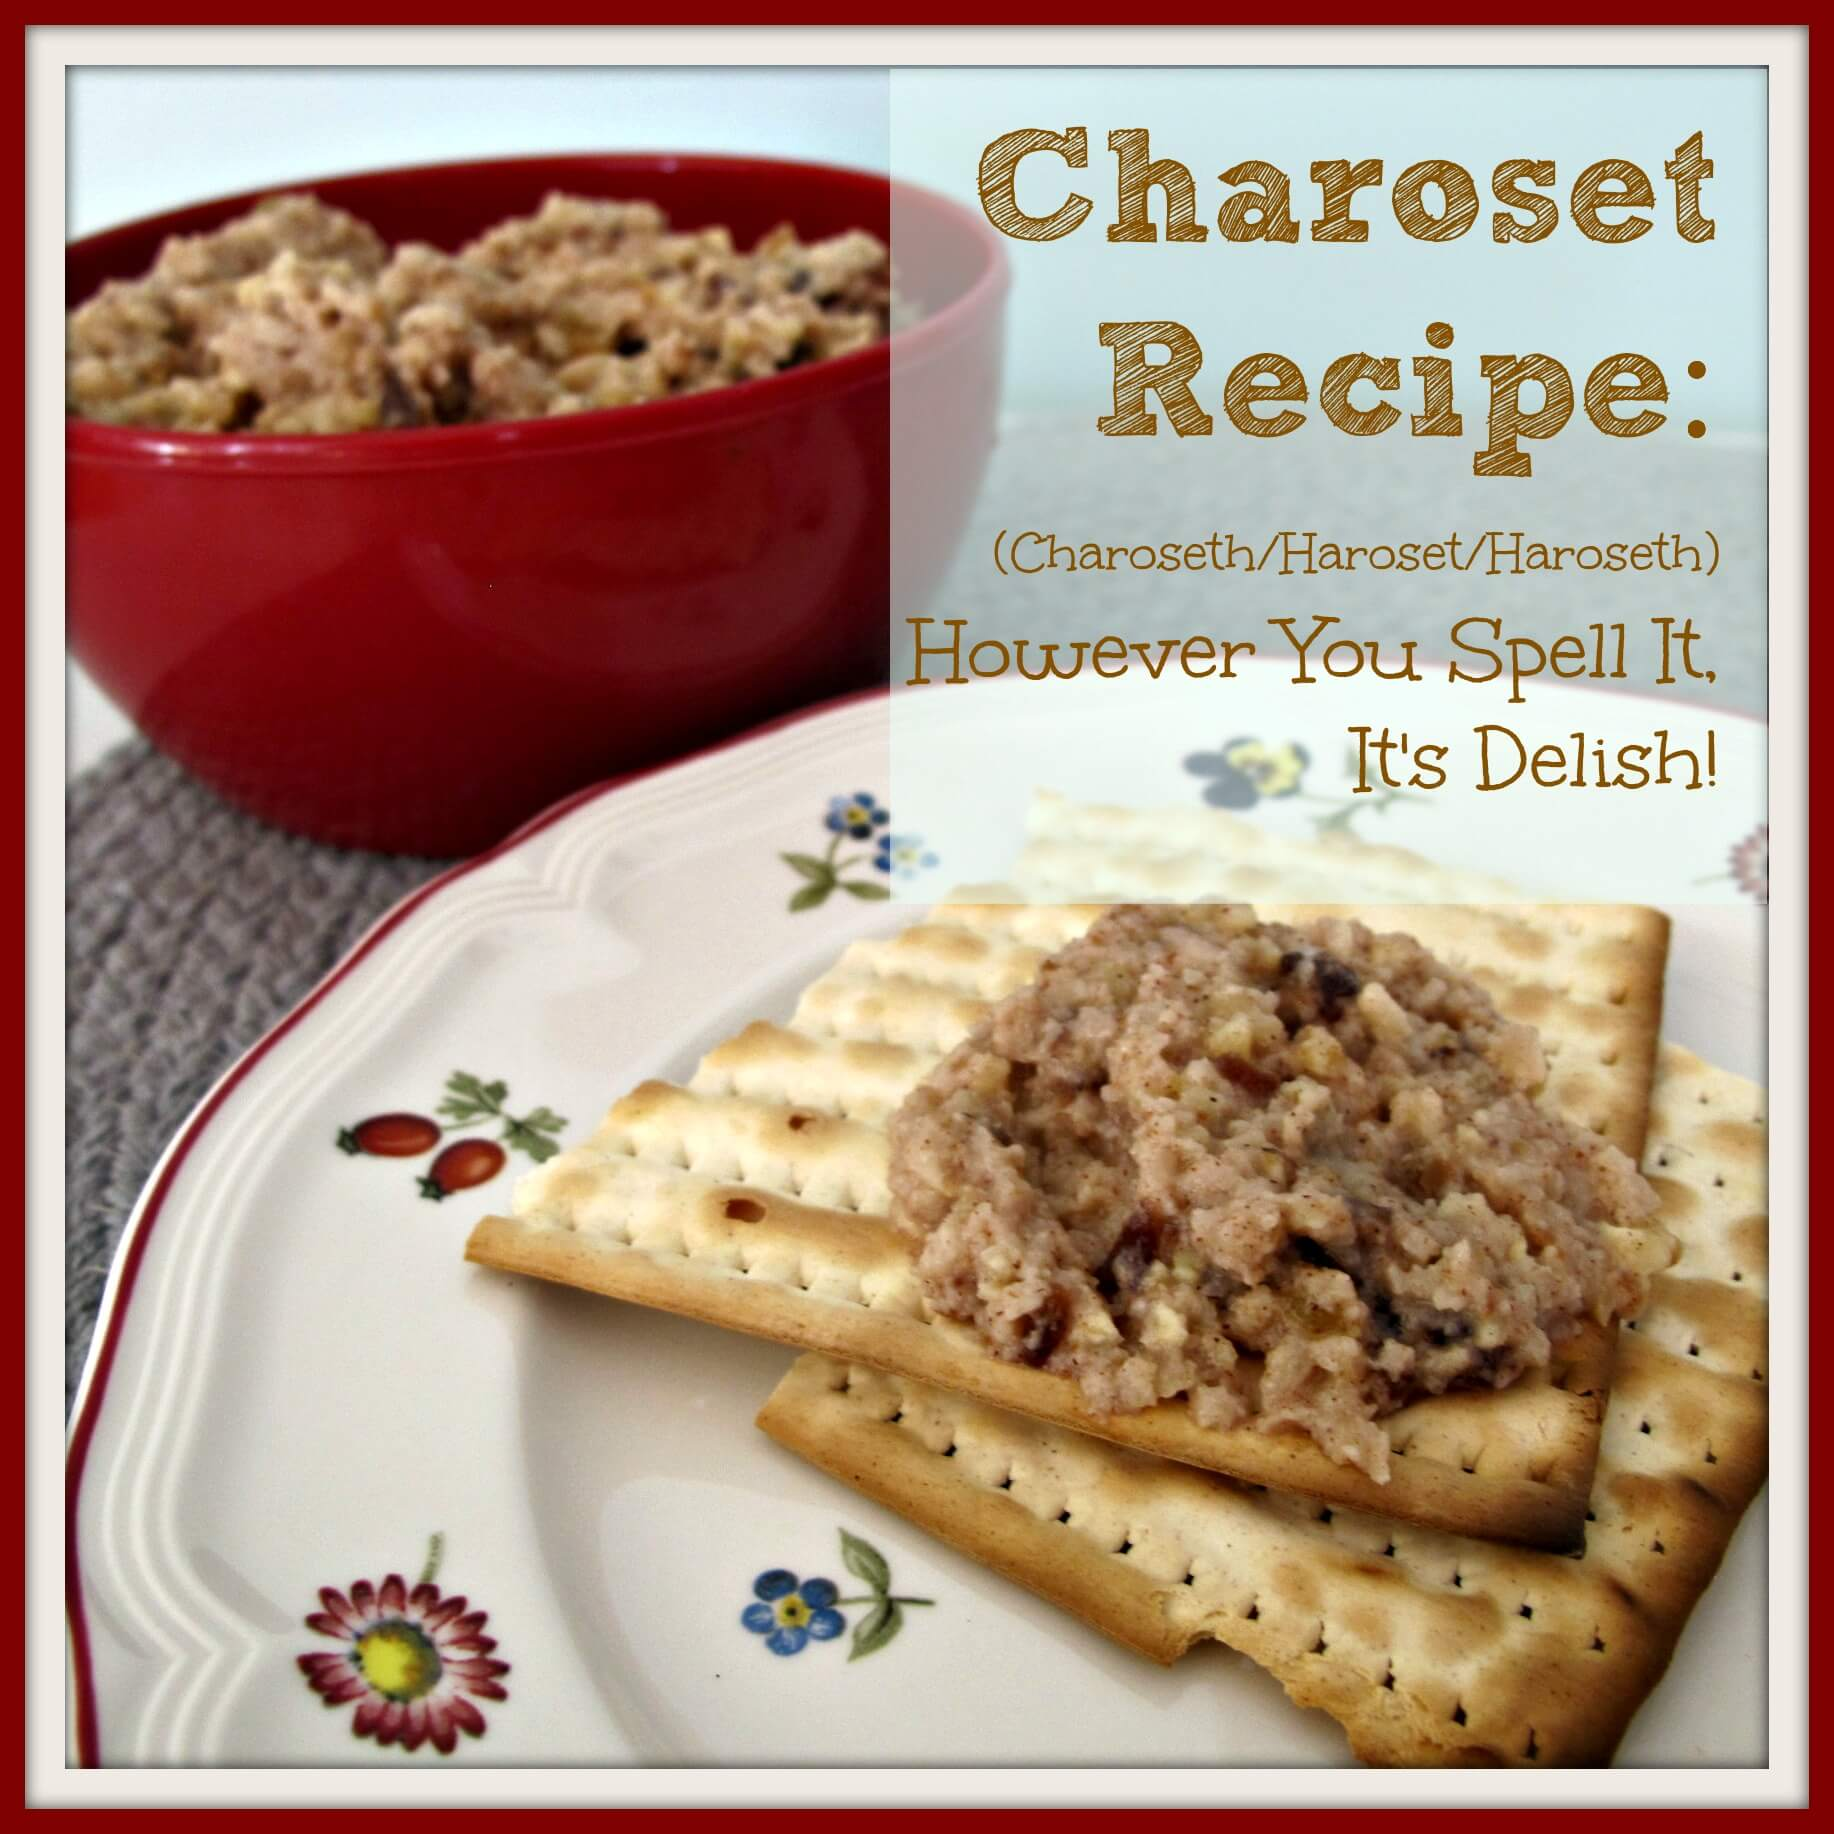 Charoset, Haroset, Charoseth, Haroseth Recipe:  However You Spell It, It's Delish!